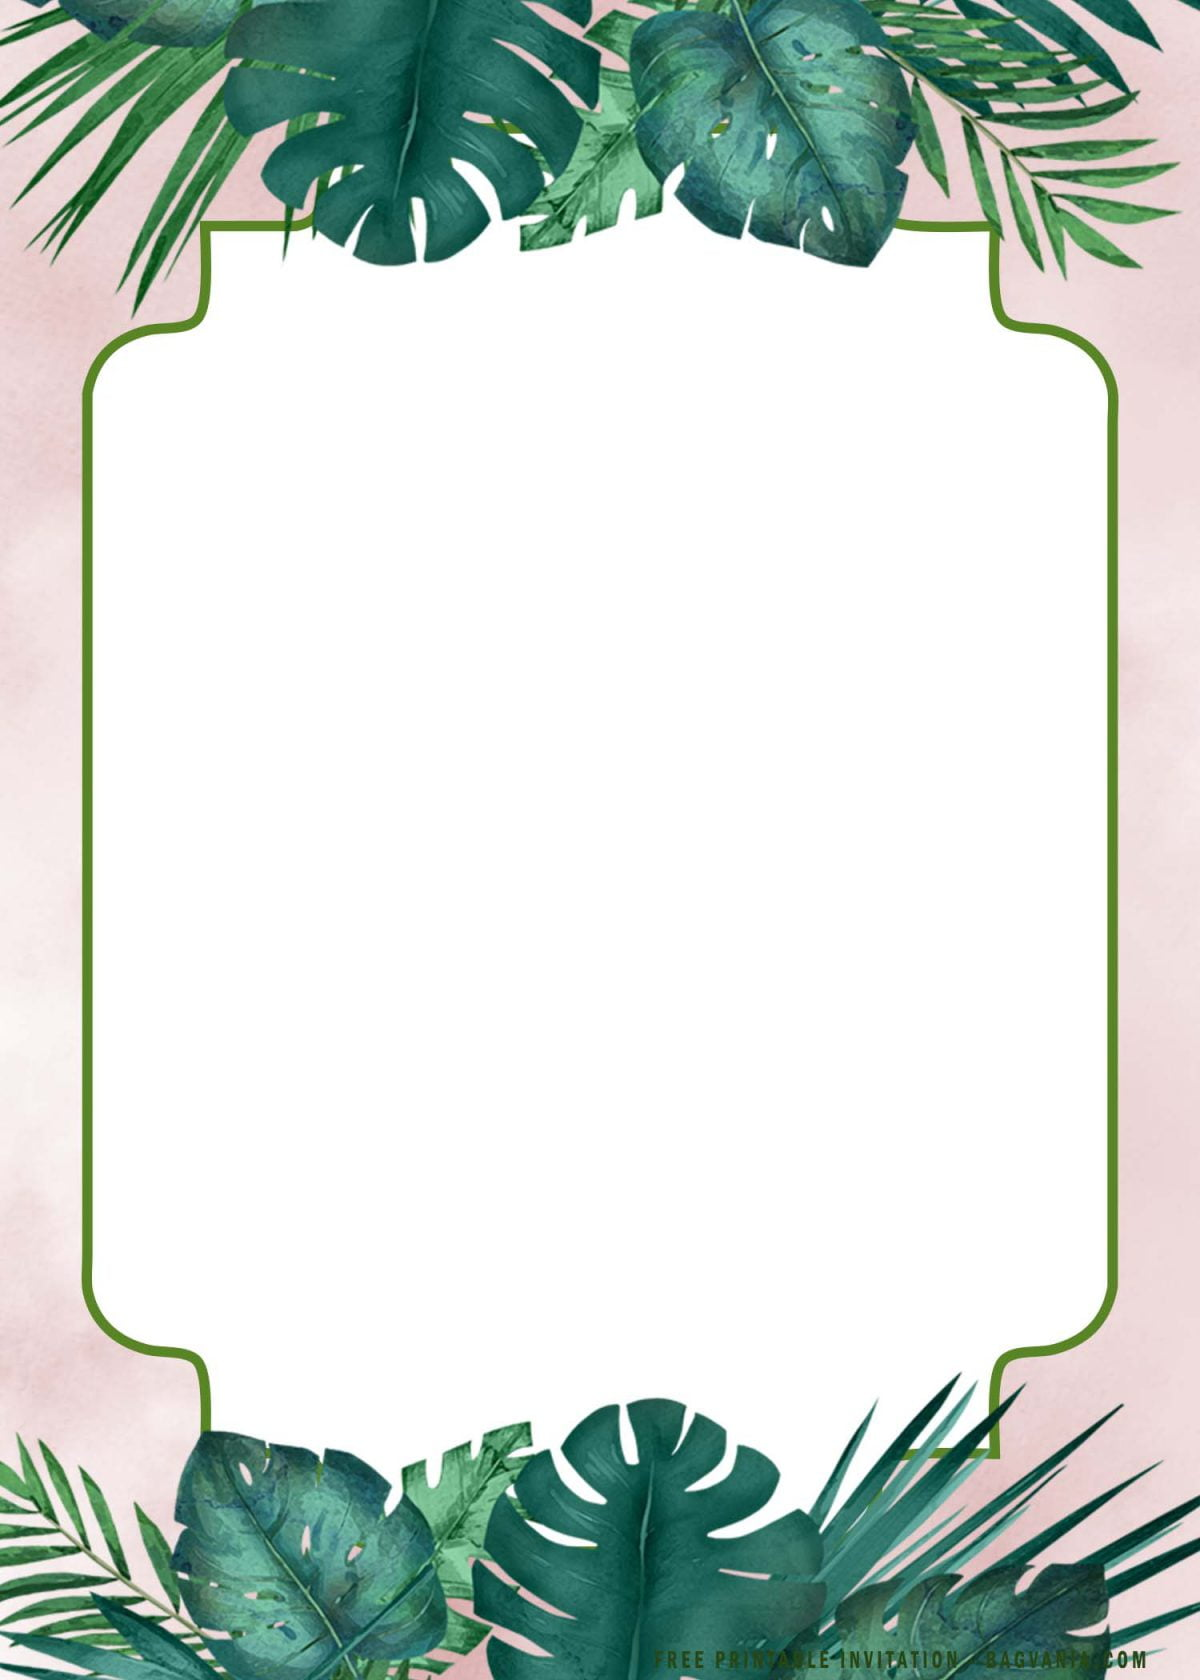 Free Printable Watercolor Greenery Blush Invitation Templates With Tropical Palm Leaves